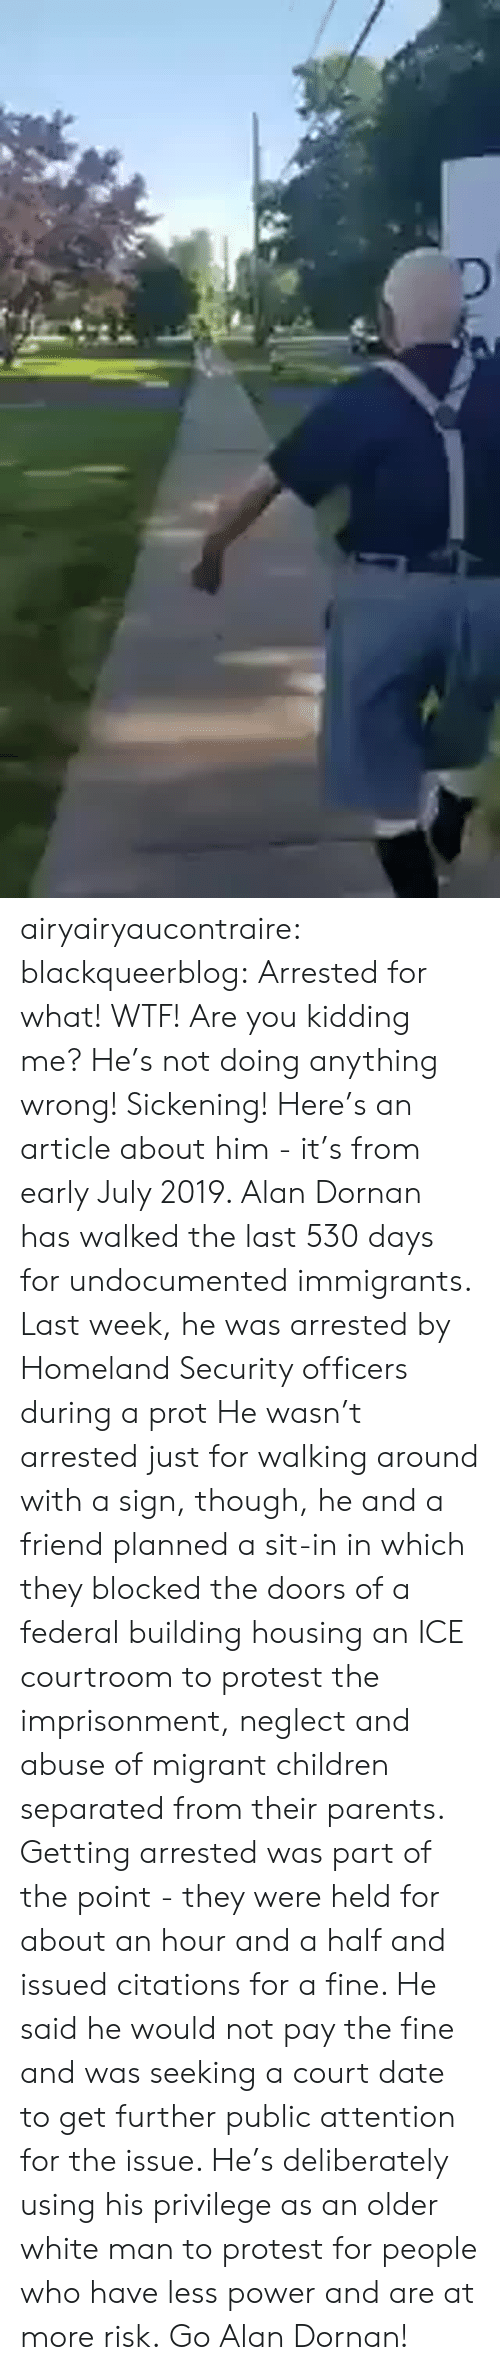 housing: airyairyaucontraire:  blackqueerblog:  Arrested for what! WTF! Are you kidding me? He's not doing anything wrong! Sickening!  Here's an article about him - it's from early July 2019.  Alan Dornan has walked the last 530 days for undocumented immigrants. Last week, he was arrested by Homeland Security officers during a prot He wasn't arrested just for walking around with a sign, though, he and a friend planned a sit-in in which they blocked the doors of a federal building housing an ICE courtroom to protest the imprisonment, neglect and abuse of migrant children separated from their parents.  Getting arrested was part of the point - they were held for about an hour and a half and issued citations for a fine. He said he would not pay the fine and was seeking a court date to get further public attention for the issue.  He's deliberately using his privilege as an older white man to protest for people who have less power and are at more risk. Go Alan Dornan!